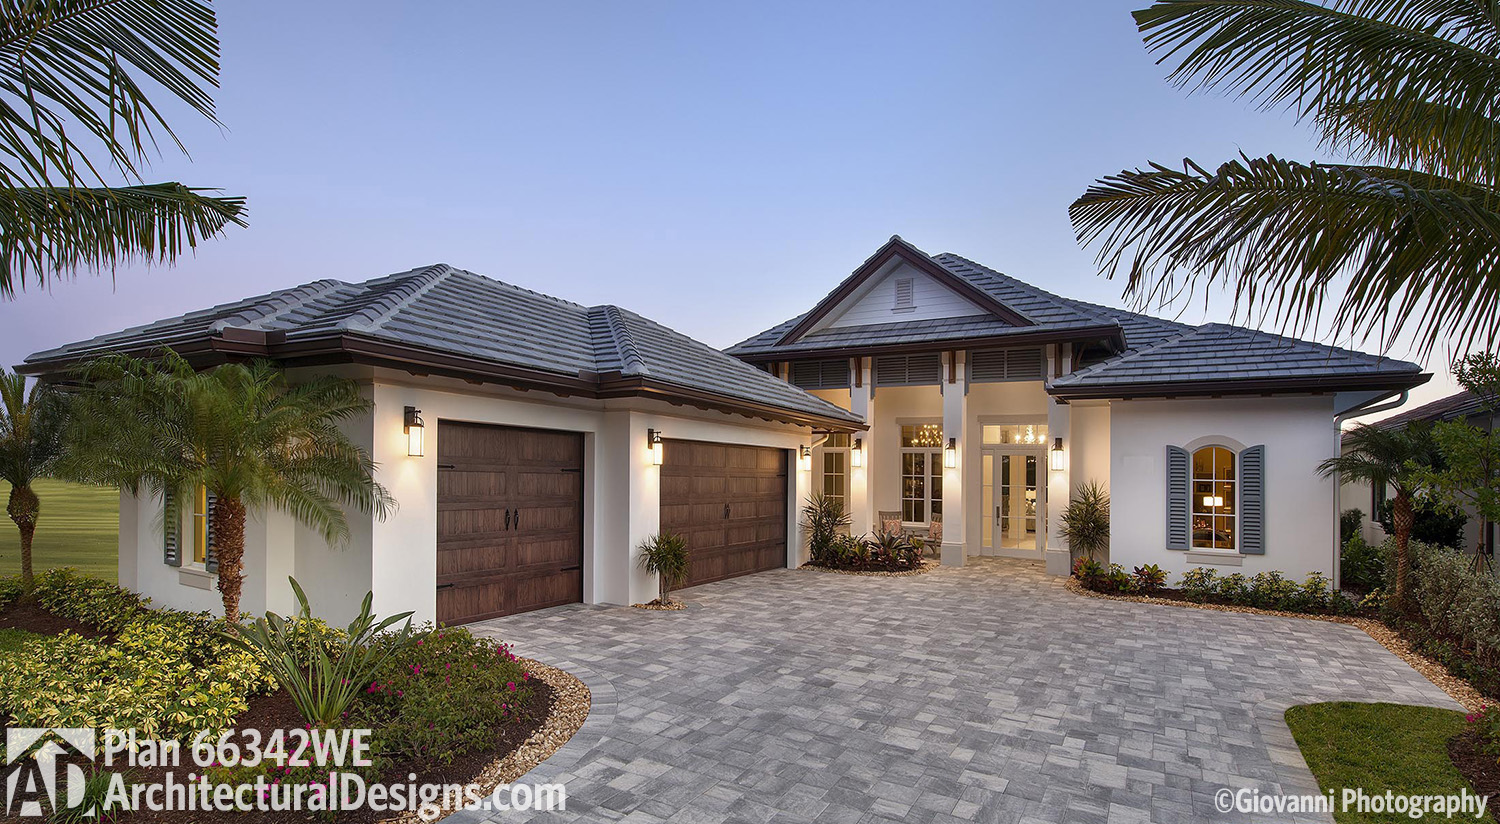 3 Bed Beauty With 2 Lanai 66342we Architectural